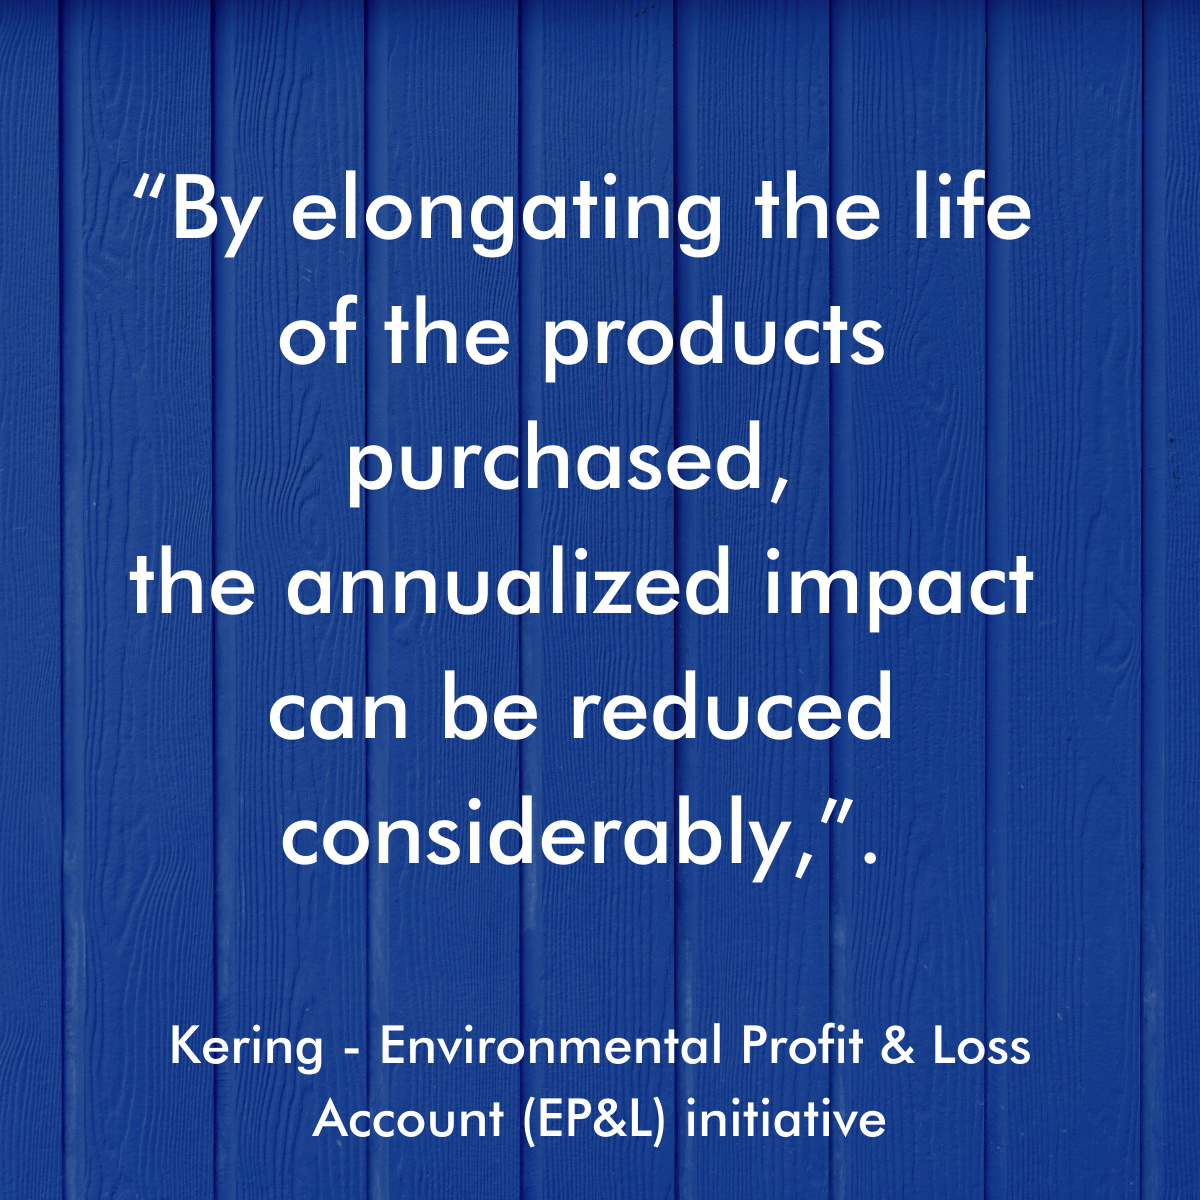 Kering Quote Elongating product life